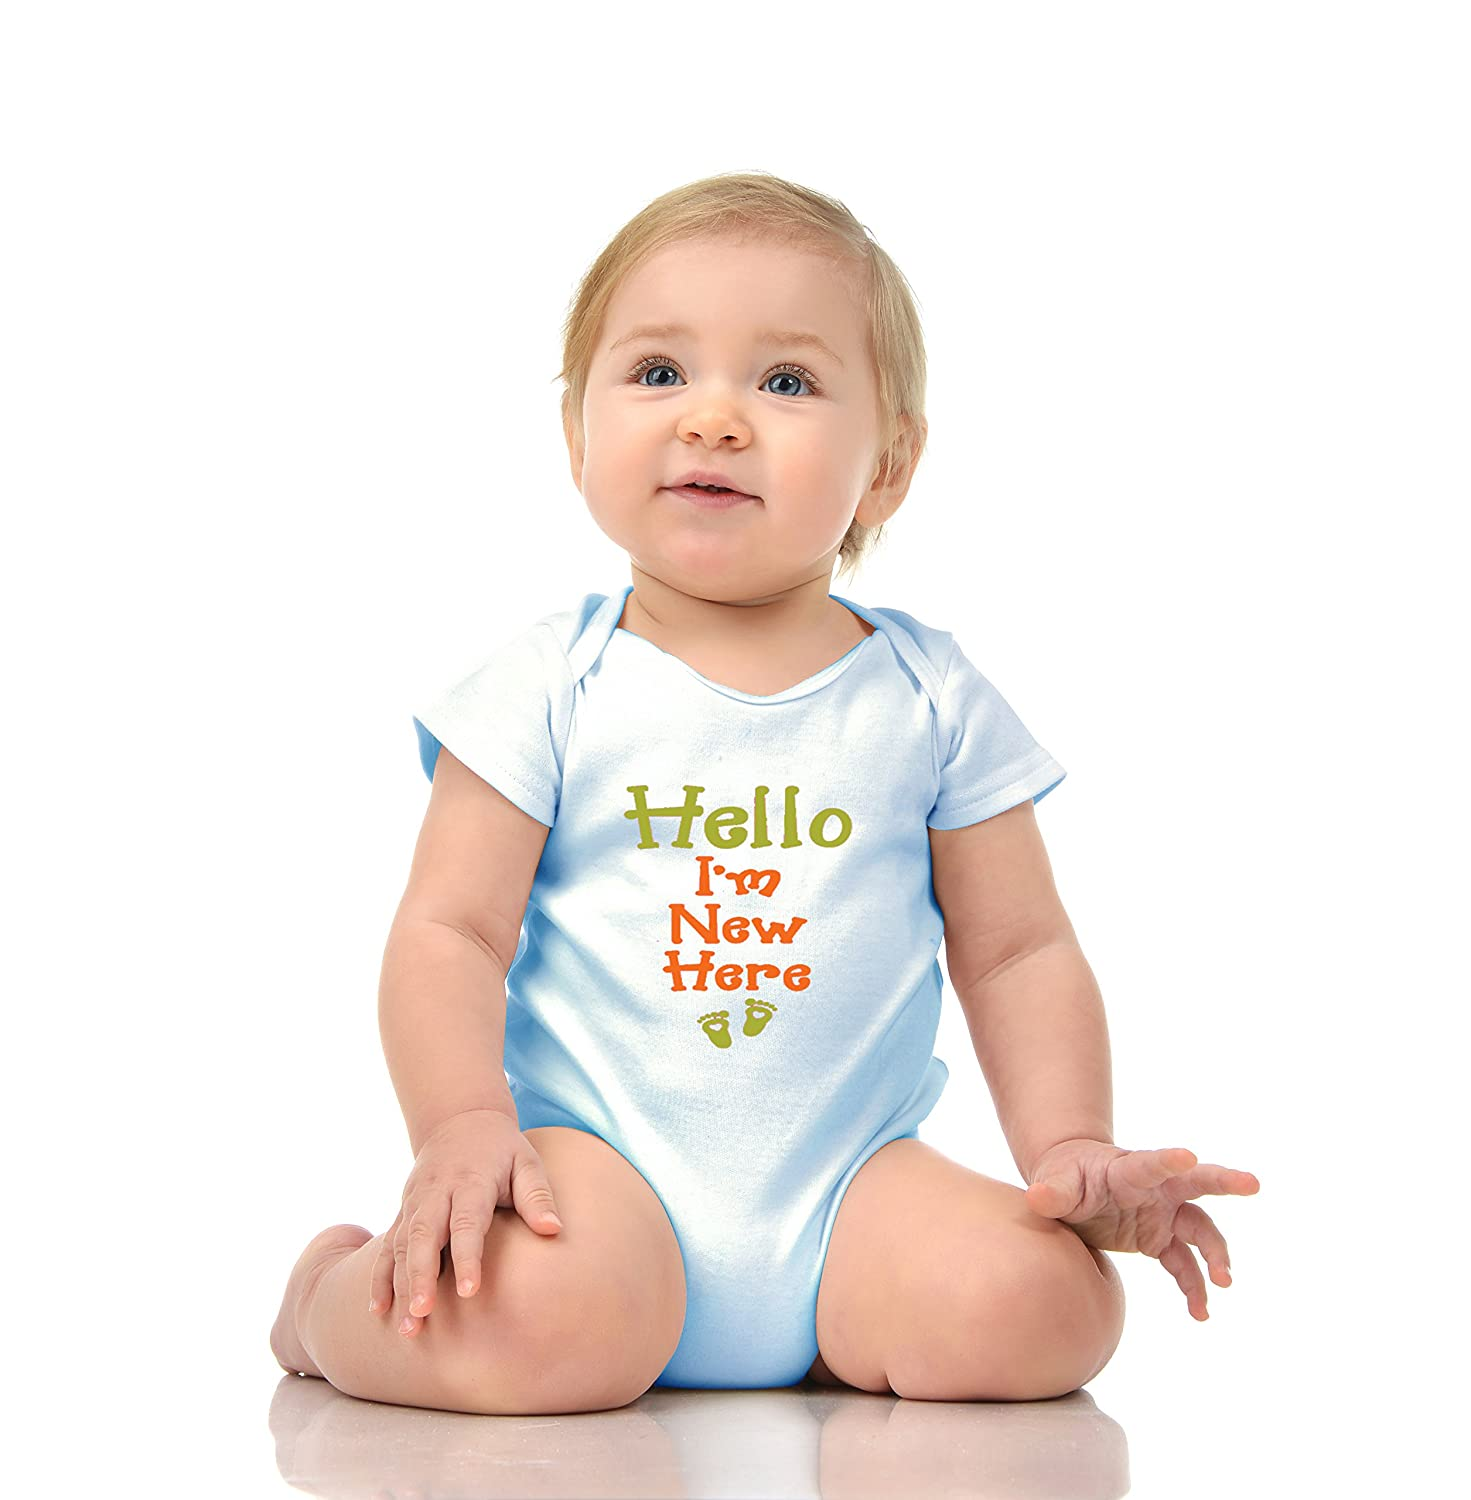 Funny New Baby Born Romper Onesie Unisex Warpped and Protected with A Clear Poly Bag I AM New HERE